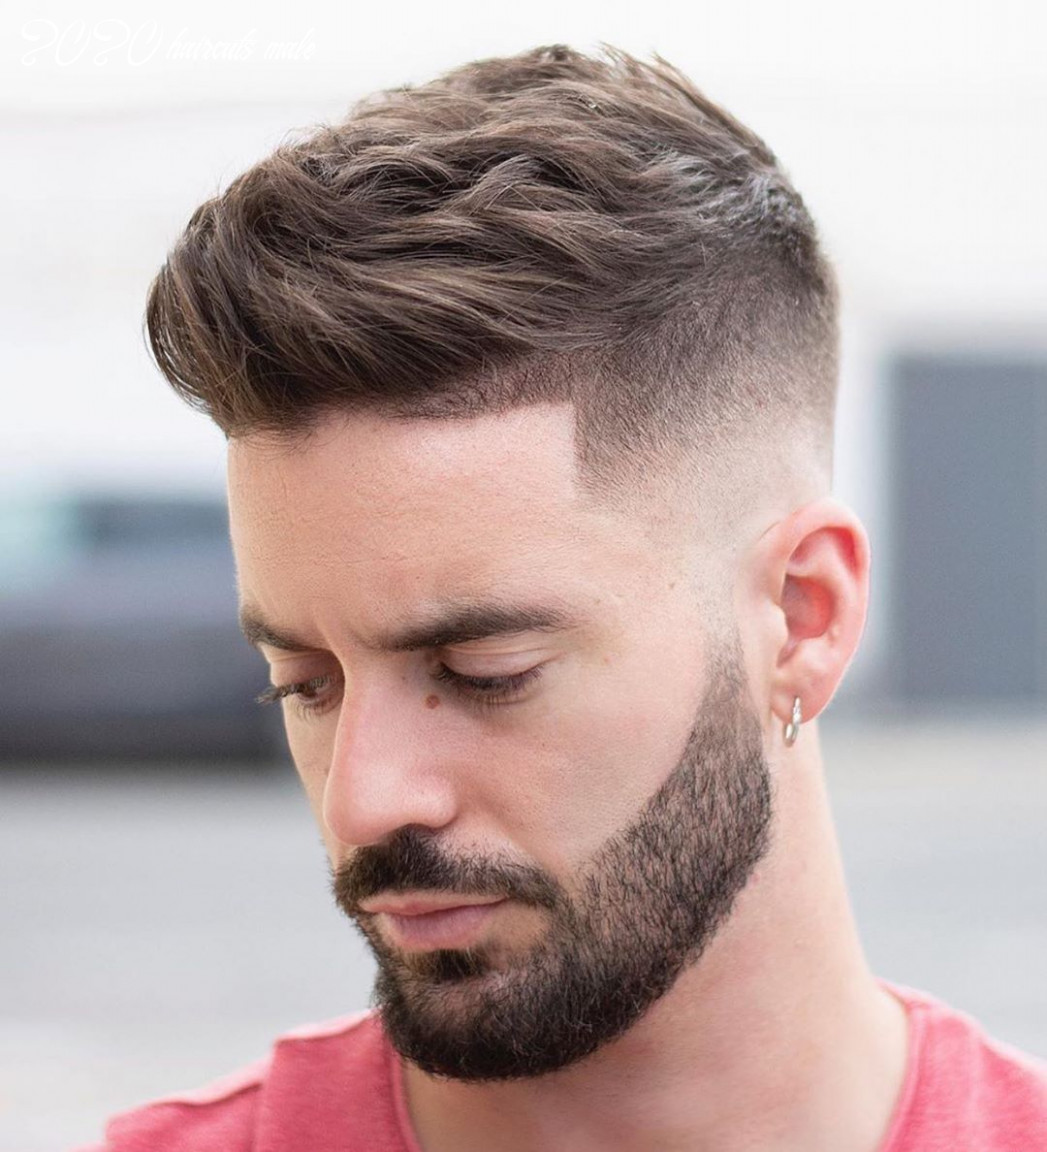 10 Best Young Men's Haircuts | The latest young men's hairstyles ...